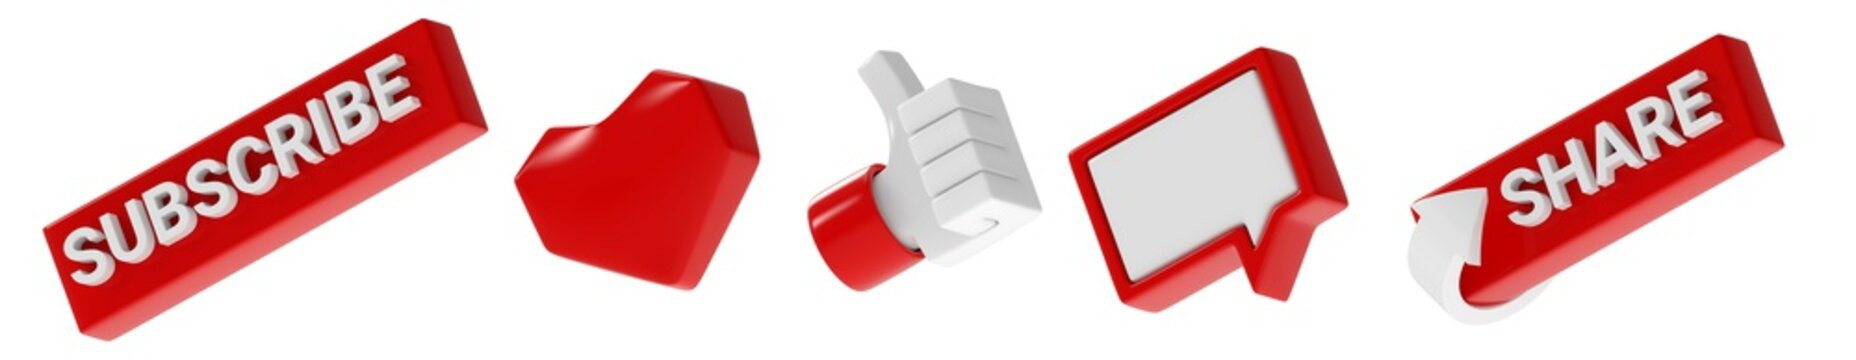 three-dimensional subscribe like thumb up hand comment share icons set isolated on white background